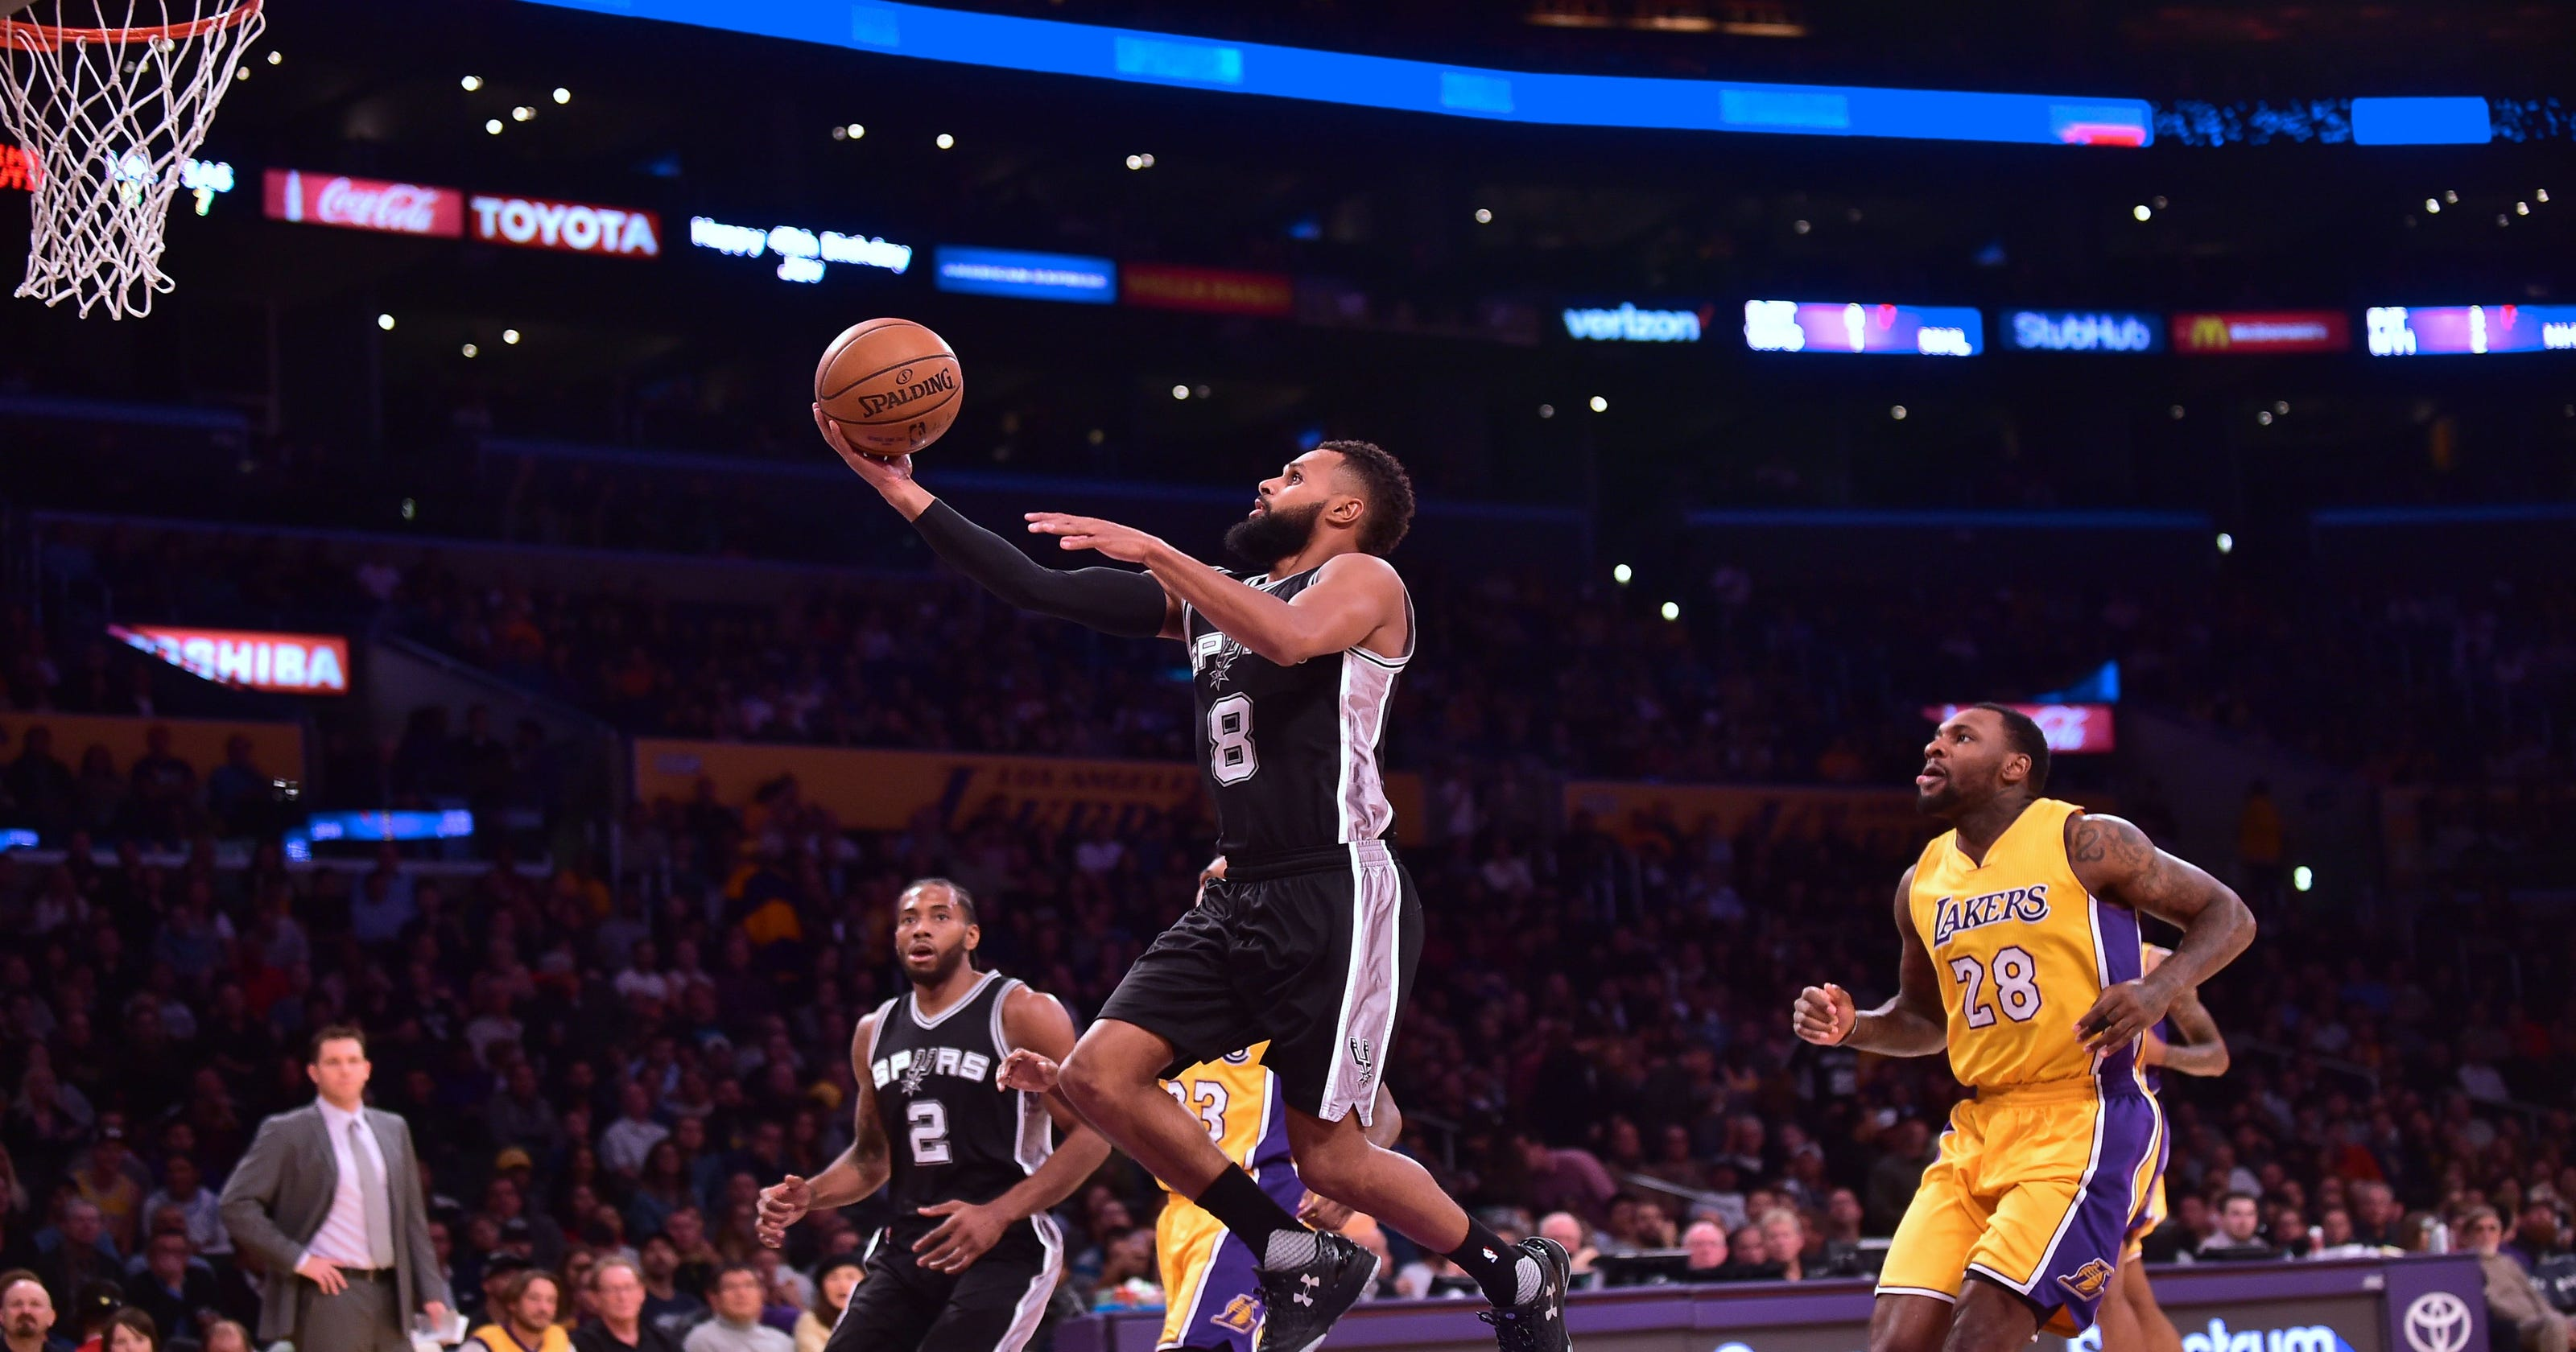 cd93c3064d4 LaMarcus Aldridge scores 23 as Spurs hold off upstart Lakers